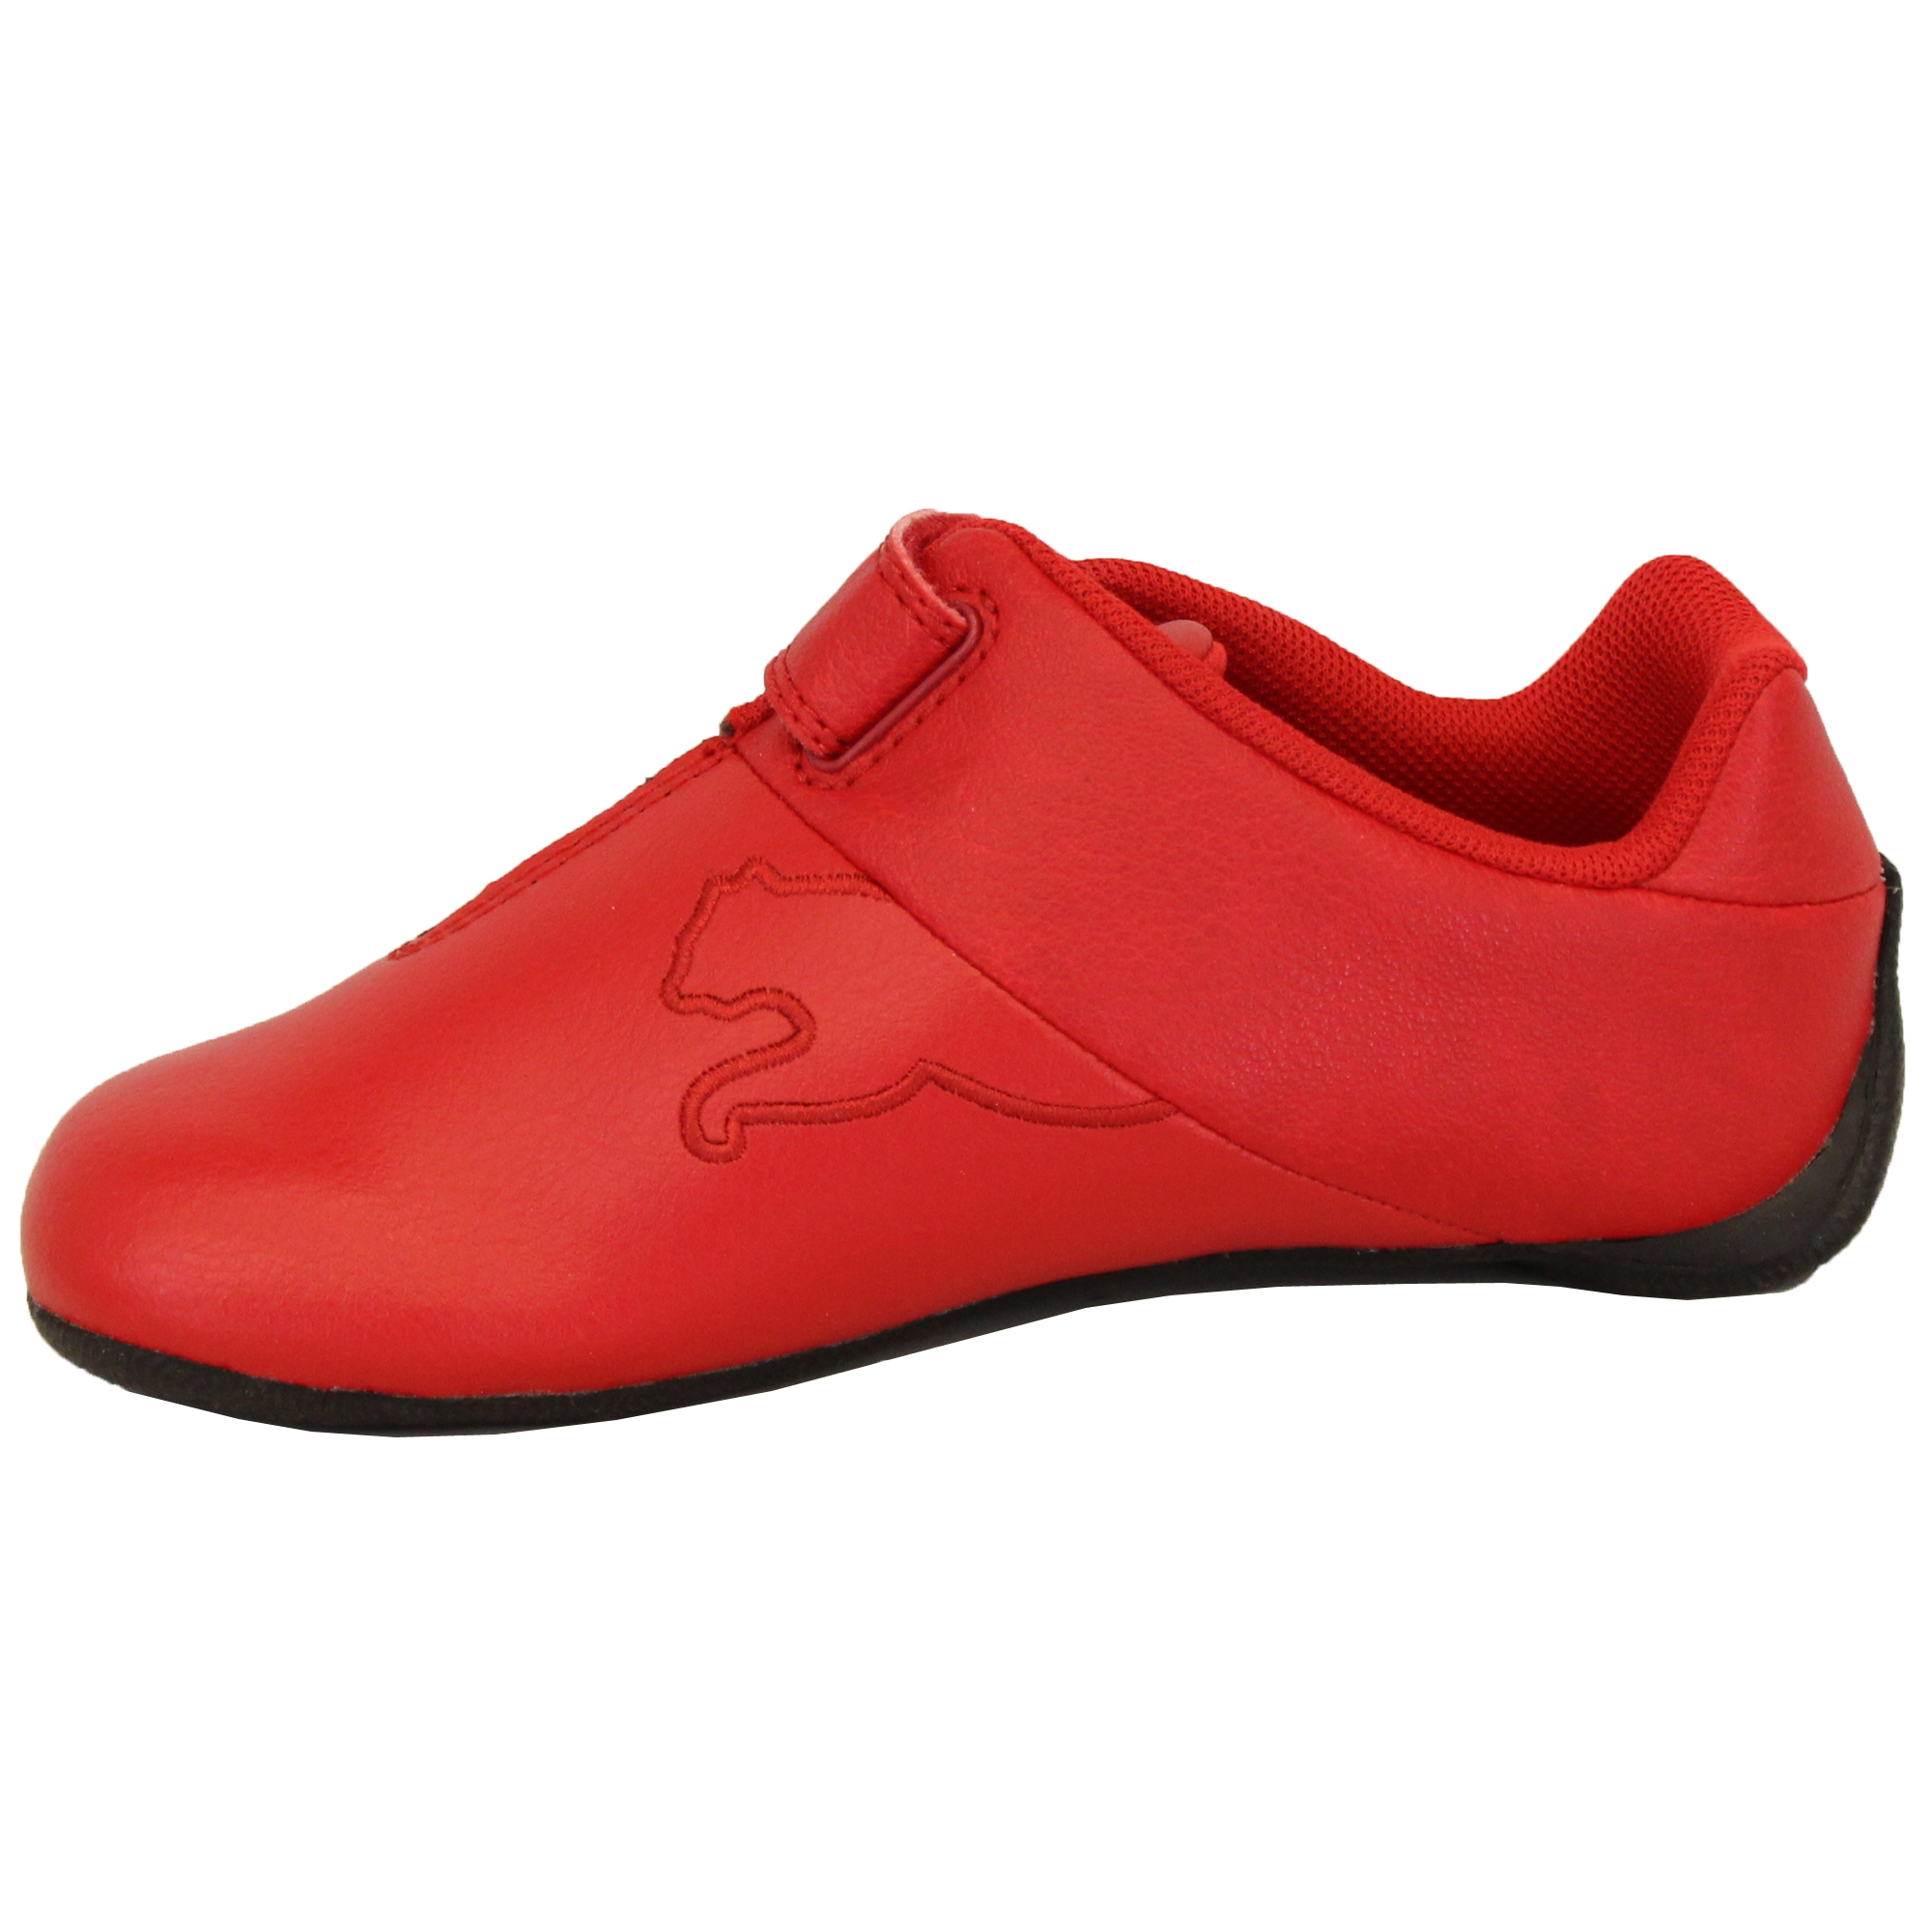 Boys-PUMA-Ferrari-Leather-Trainers-Kids-Evo-Power-Speed-Cat-Sports-Shoes-Casual thumbnail 7